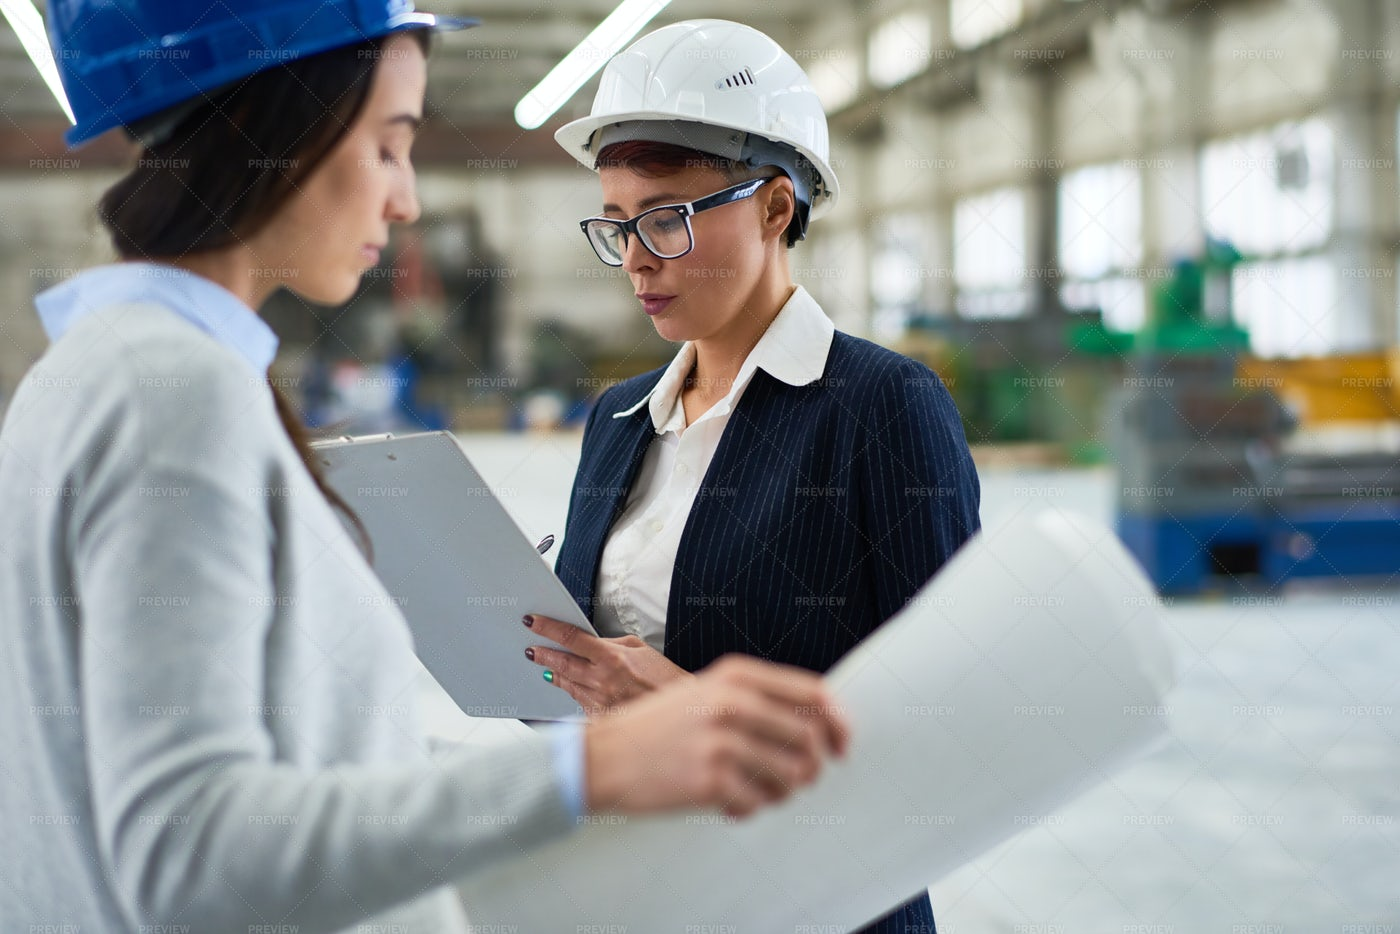 Concentrated Female Architect...: Stock Photos